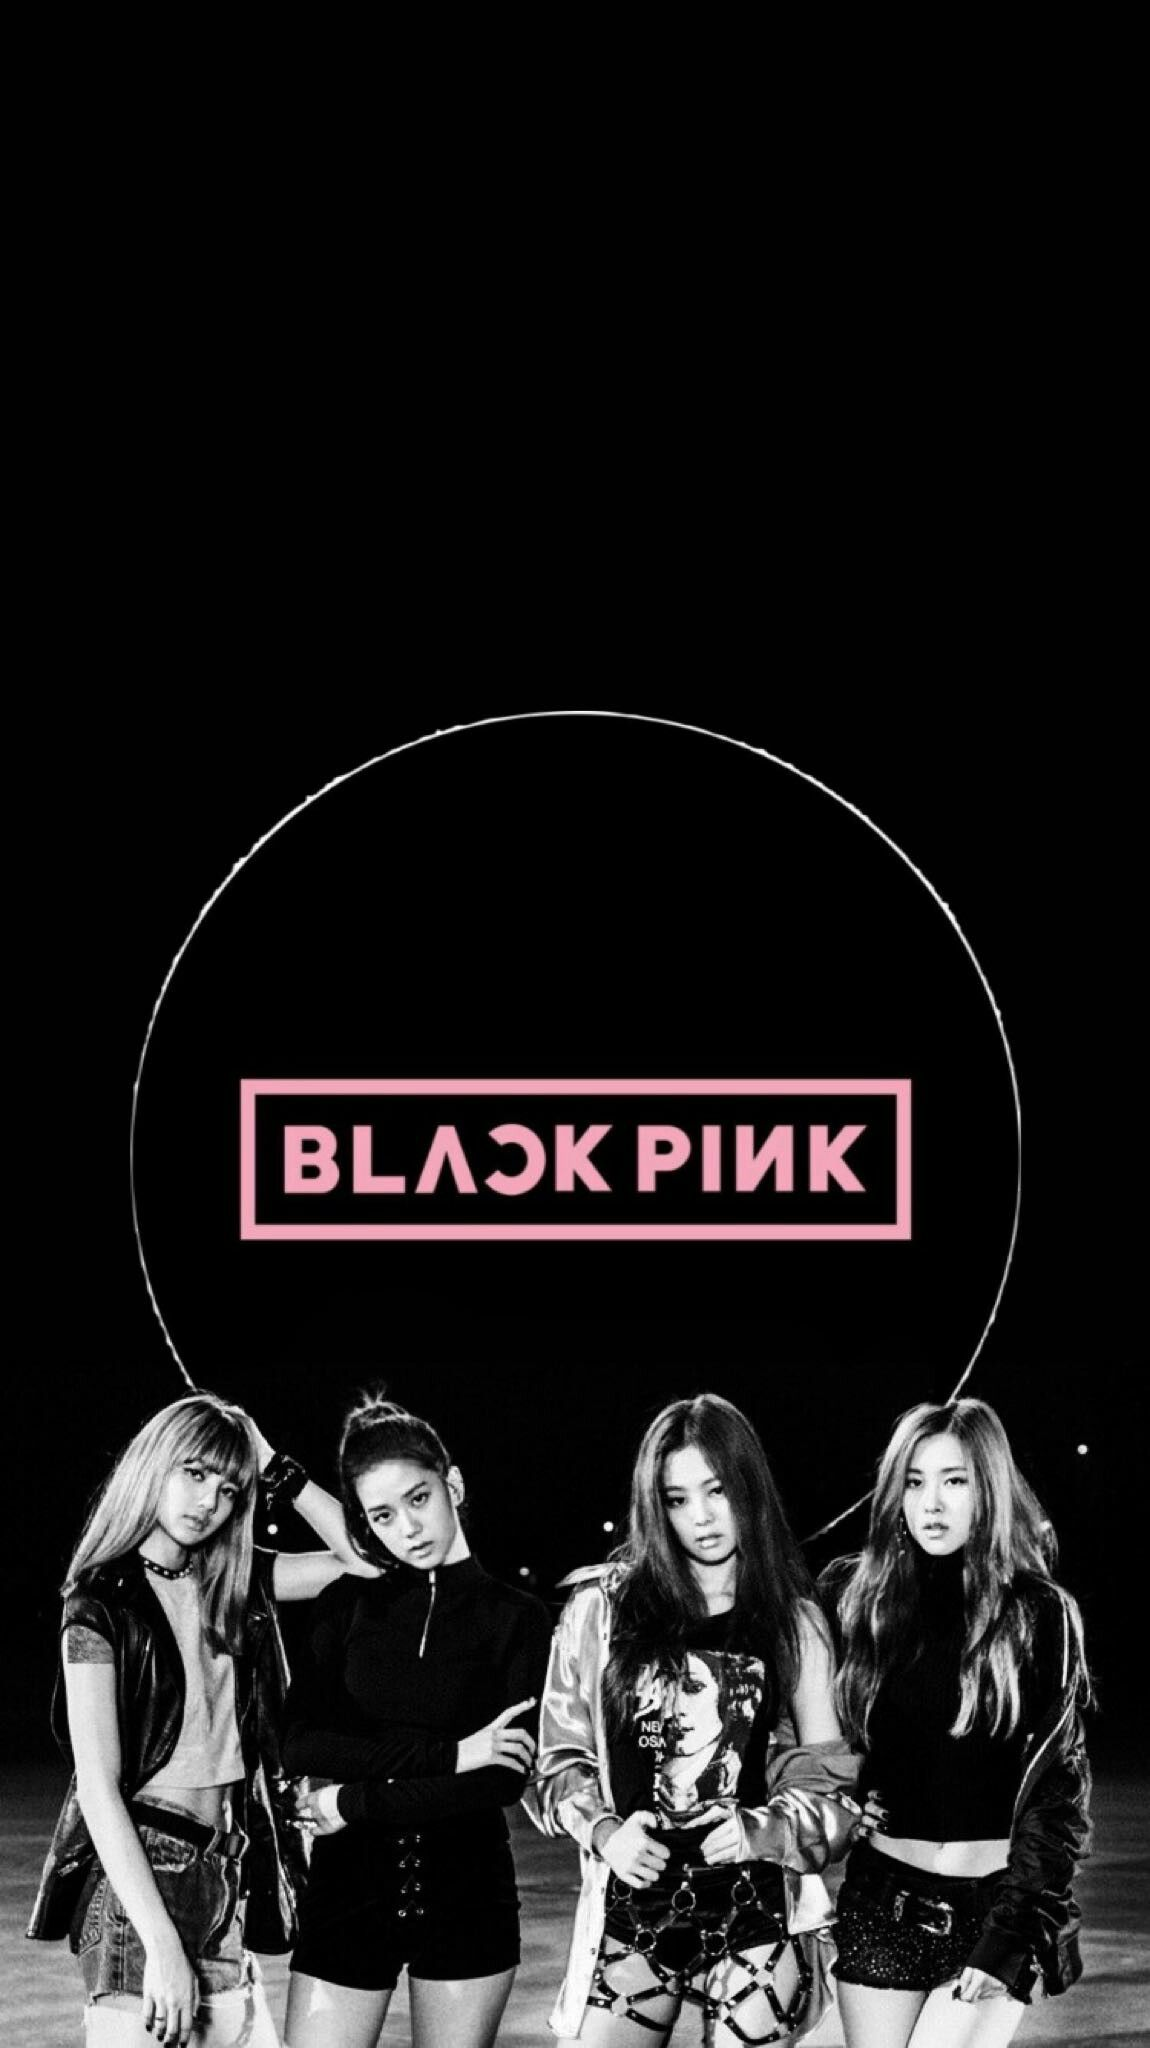 Blackpink Wallpaper For Android Blackpink Pinterest Wallpaper